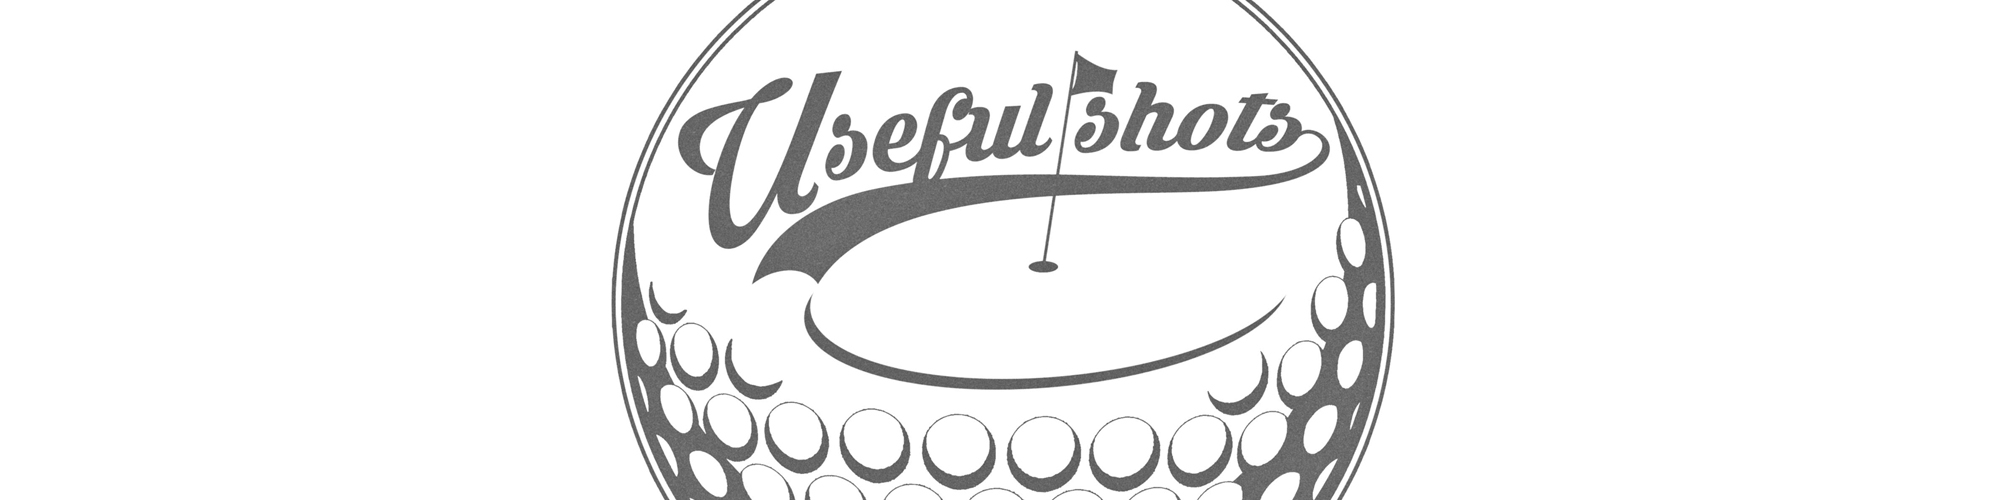 Useful Shots Golf